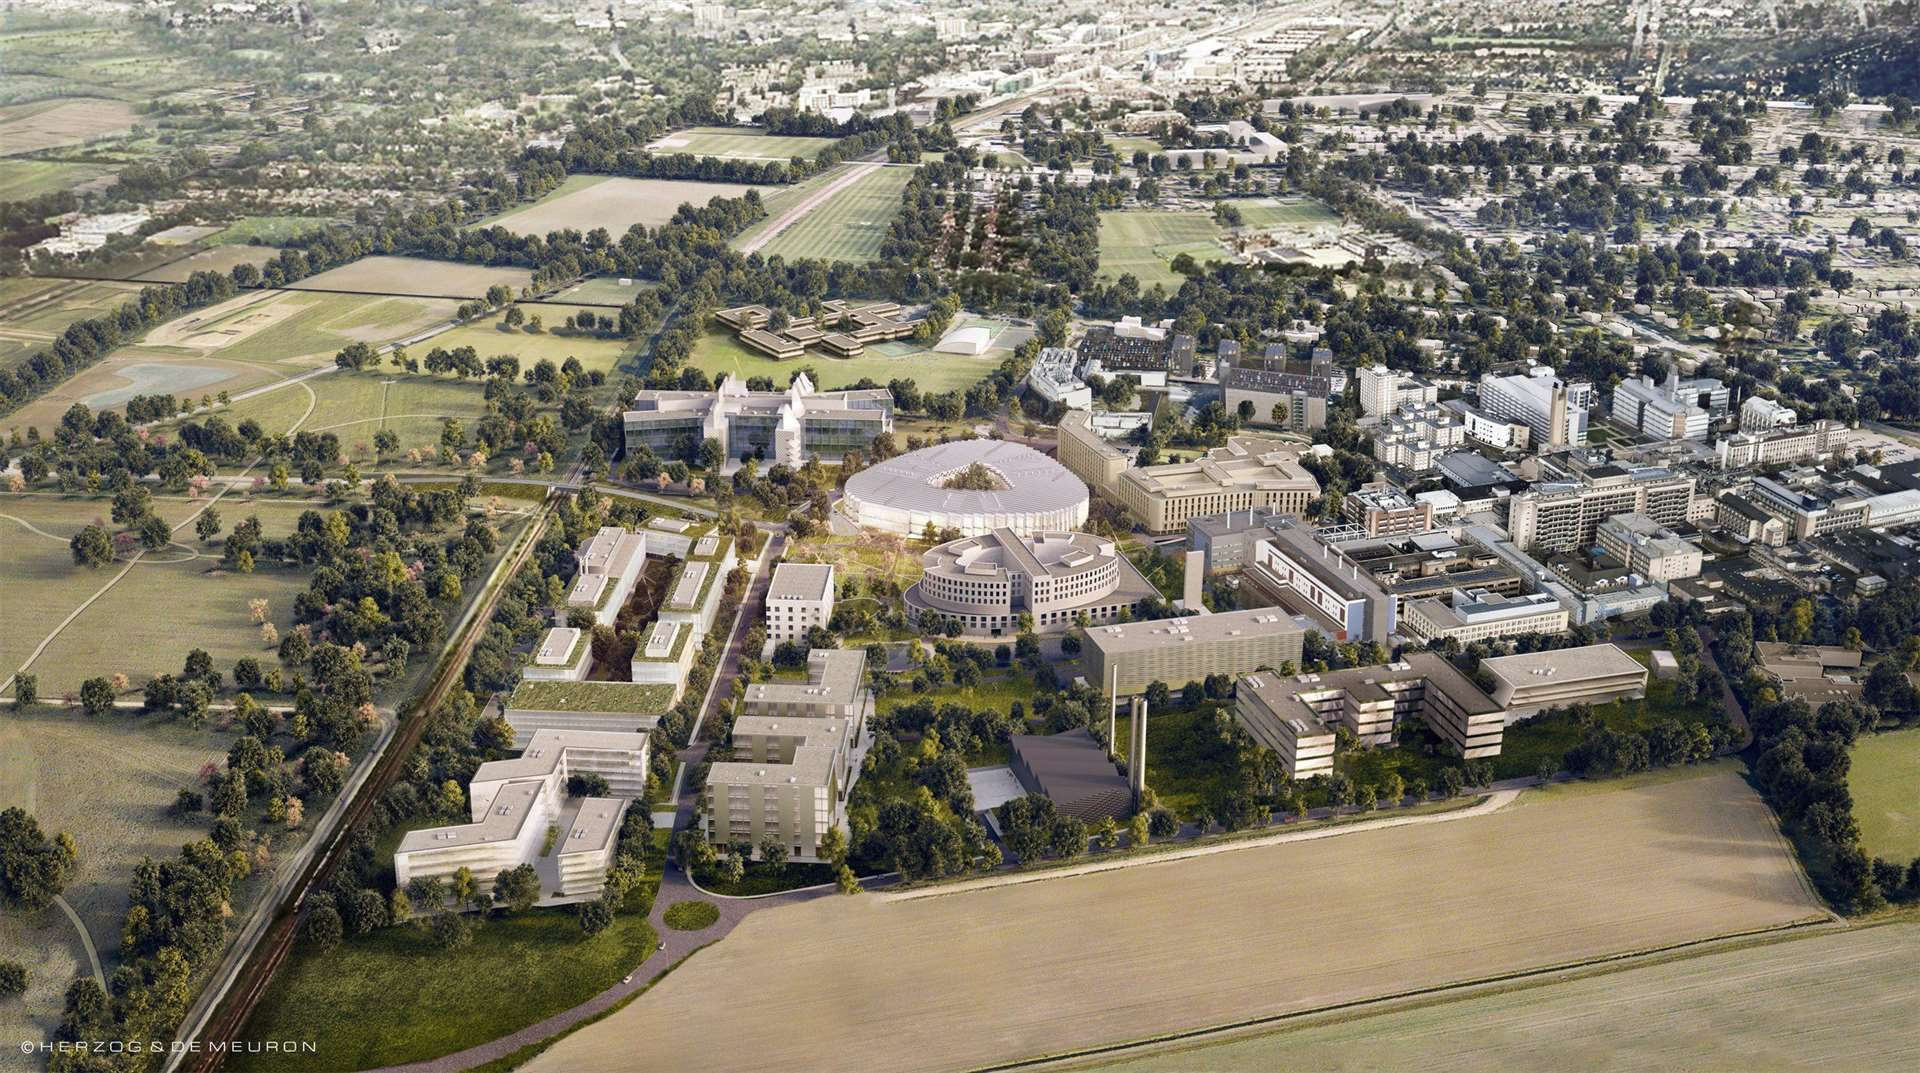 Bird's eye vision of AstraZeneca at Cambridge Biomedical Campus. (7974034)